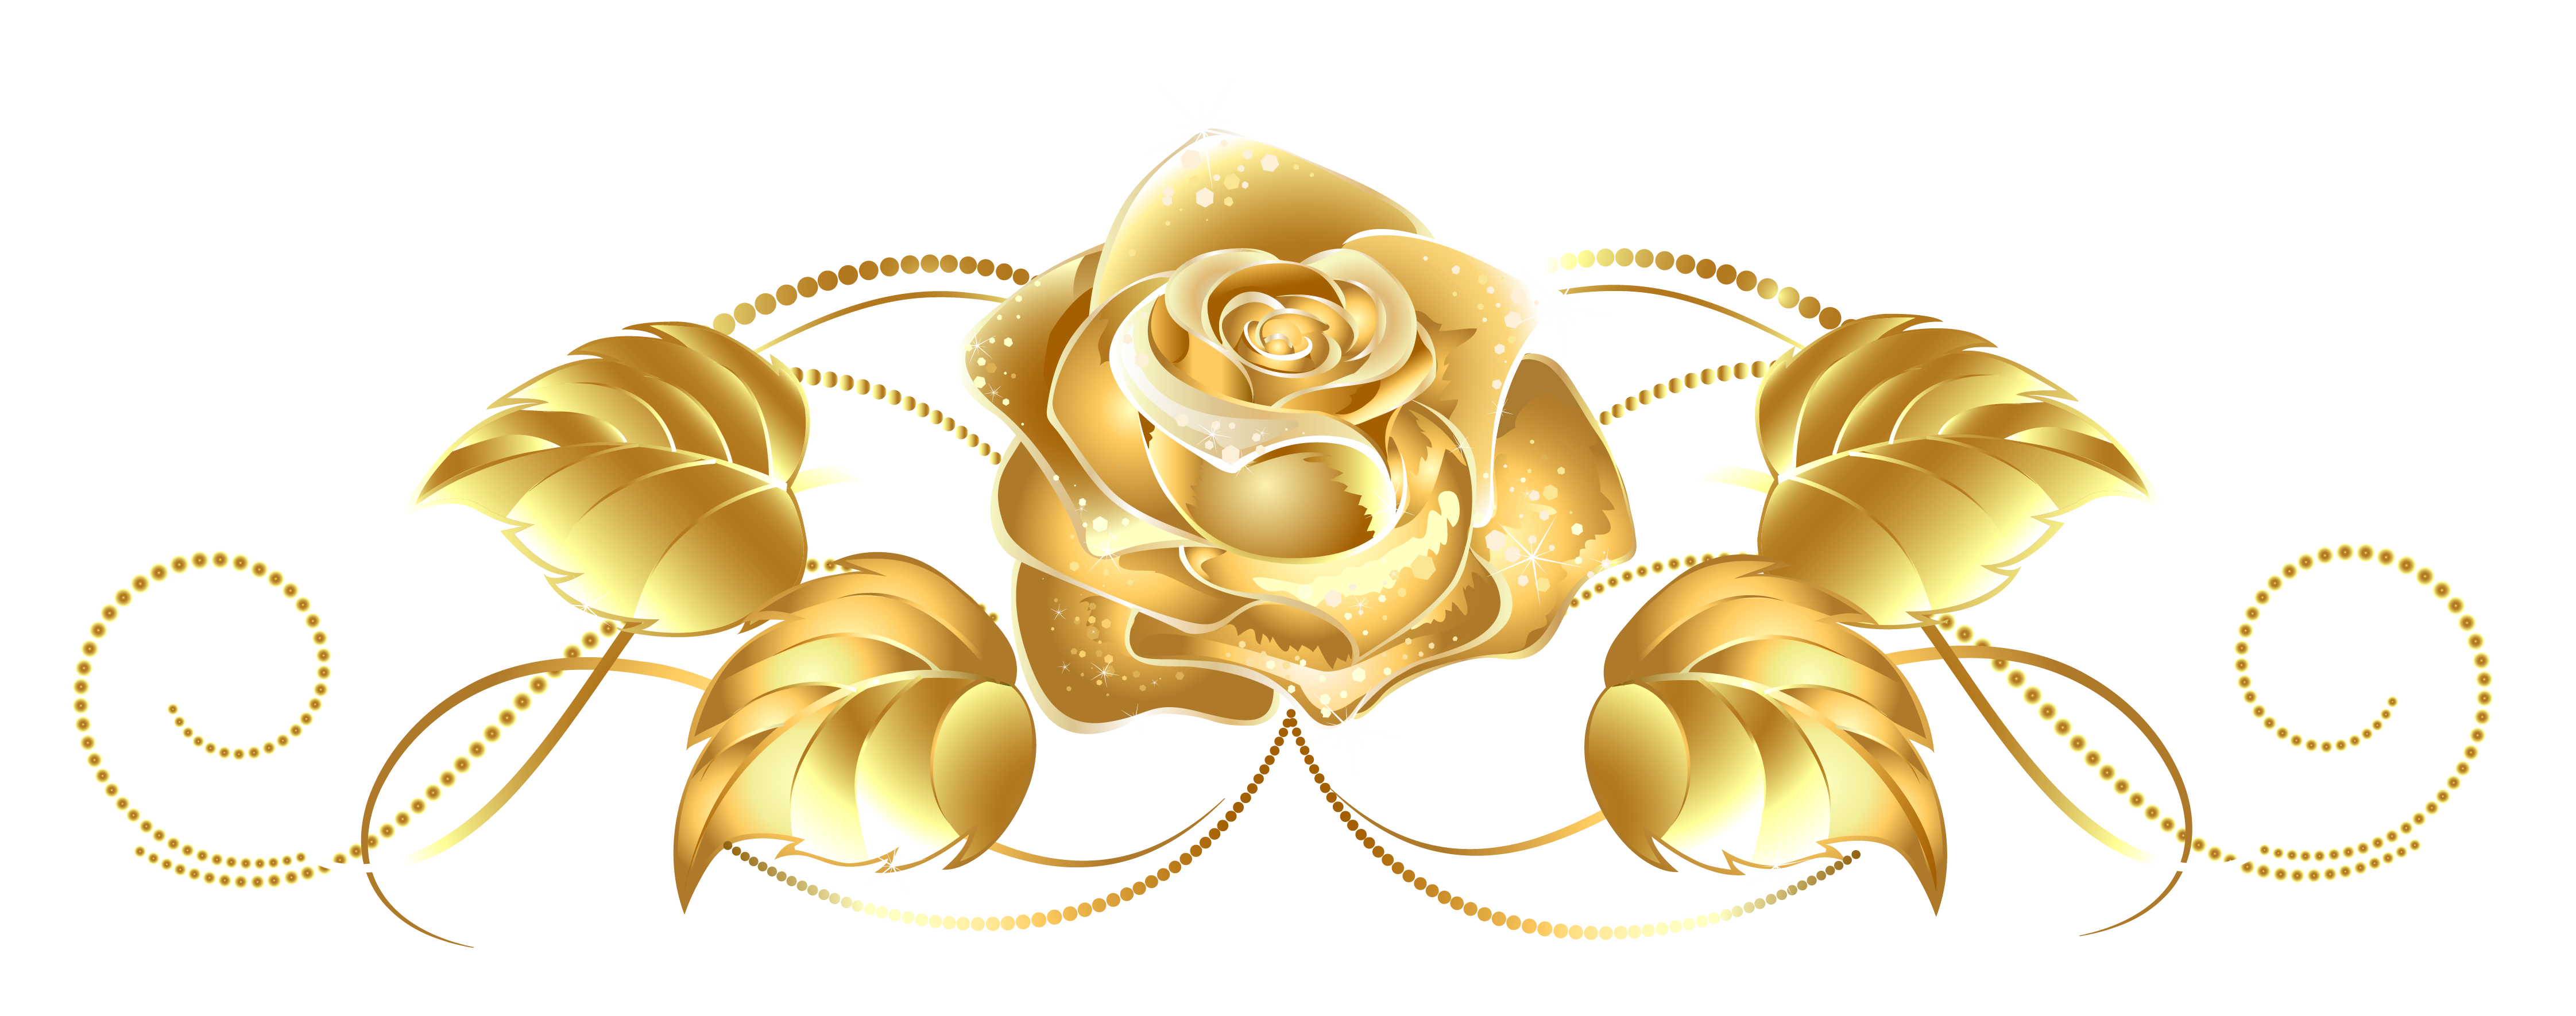 Beautiful Gold Rose Decor PNG Image